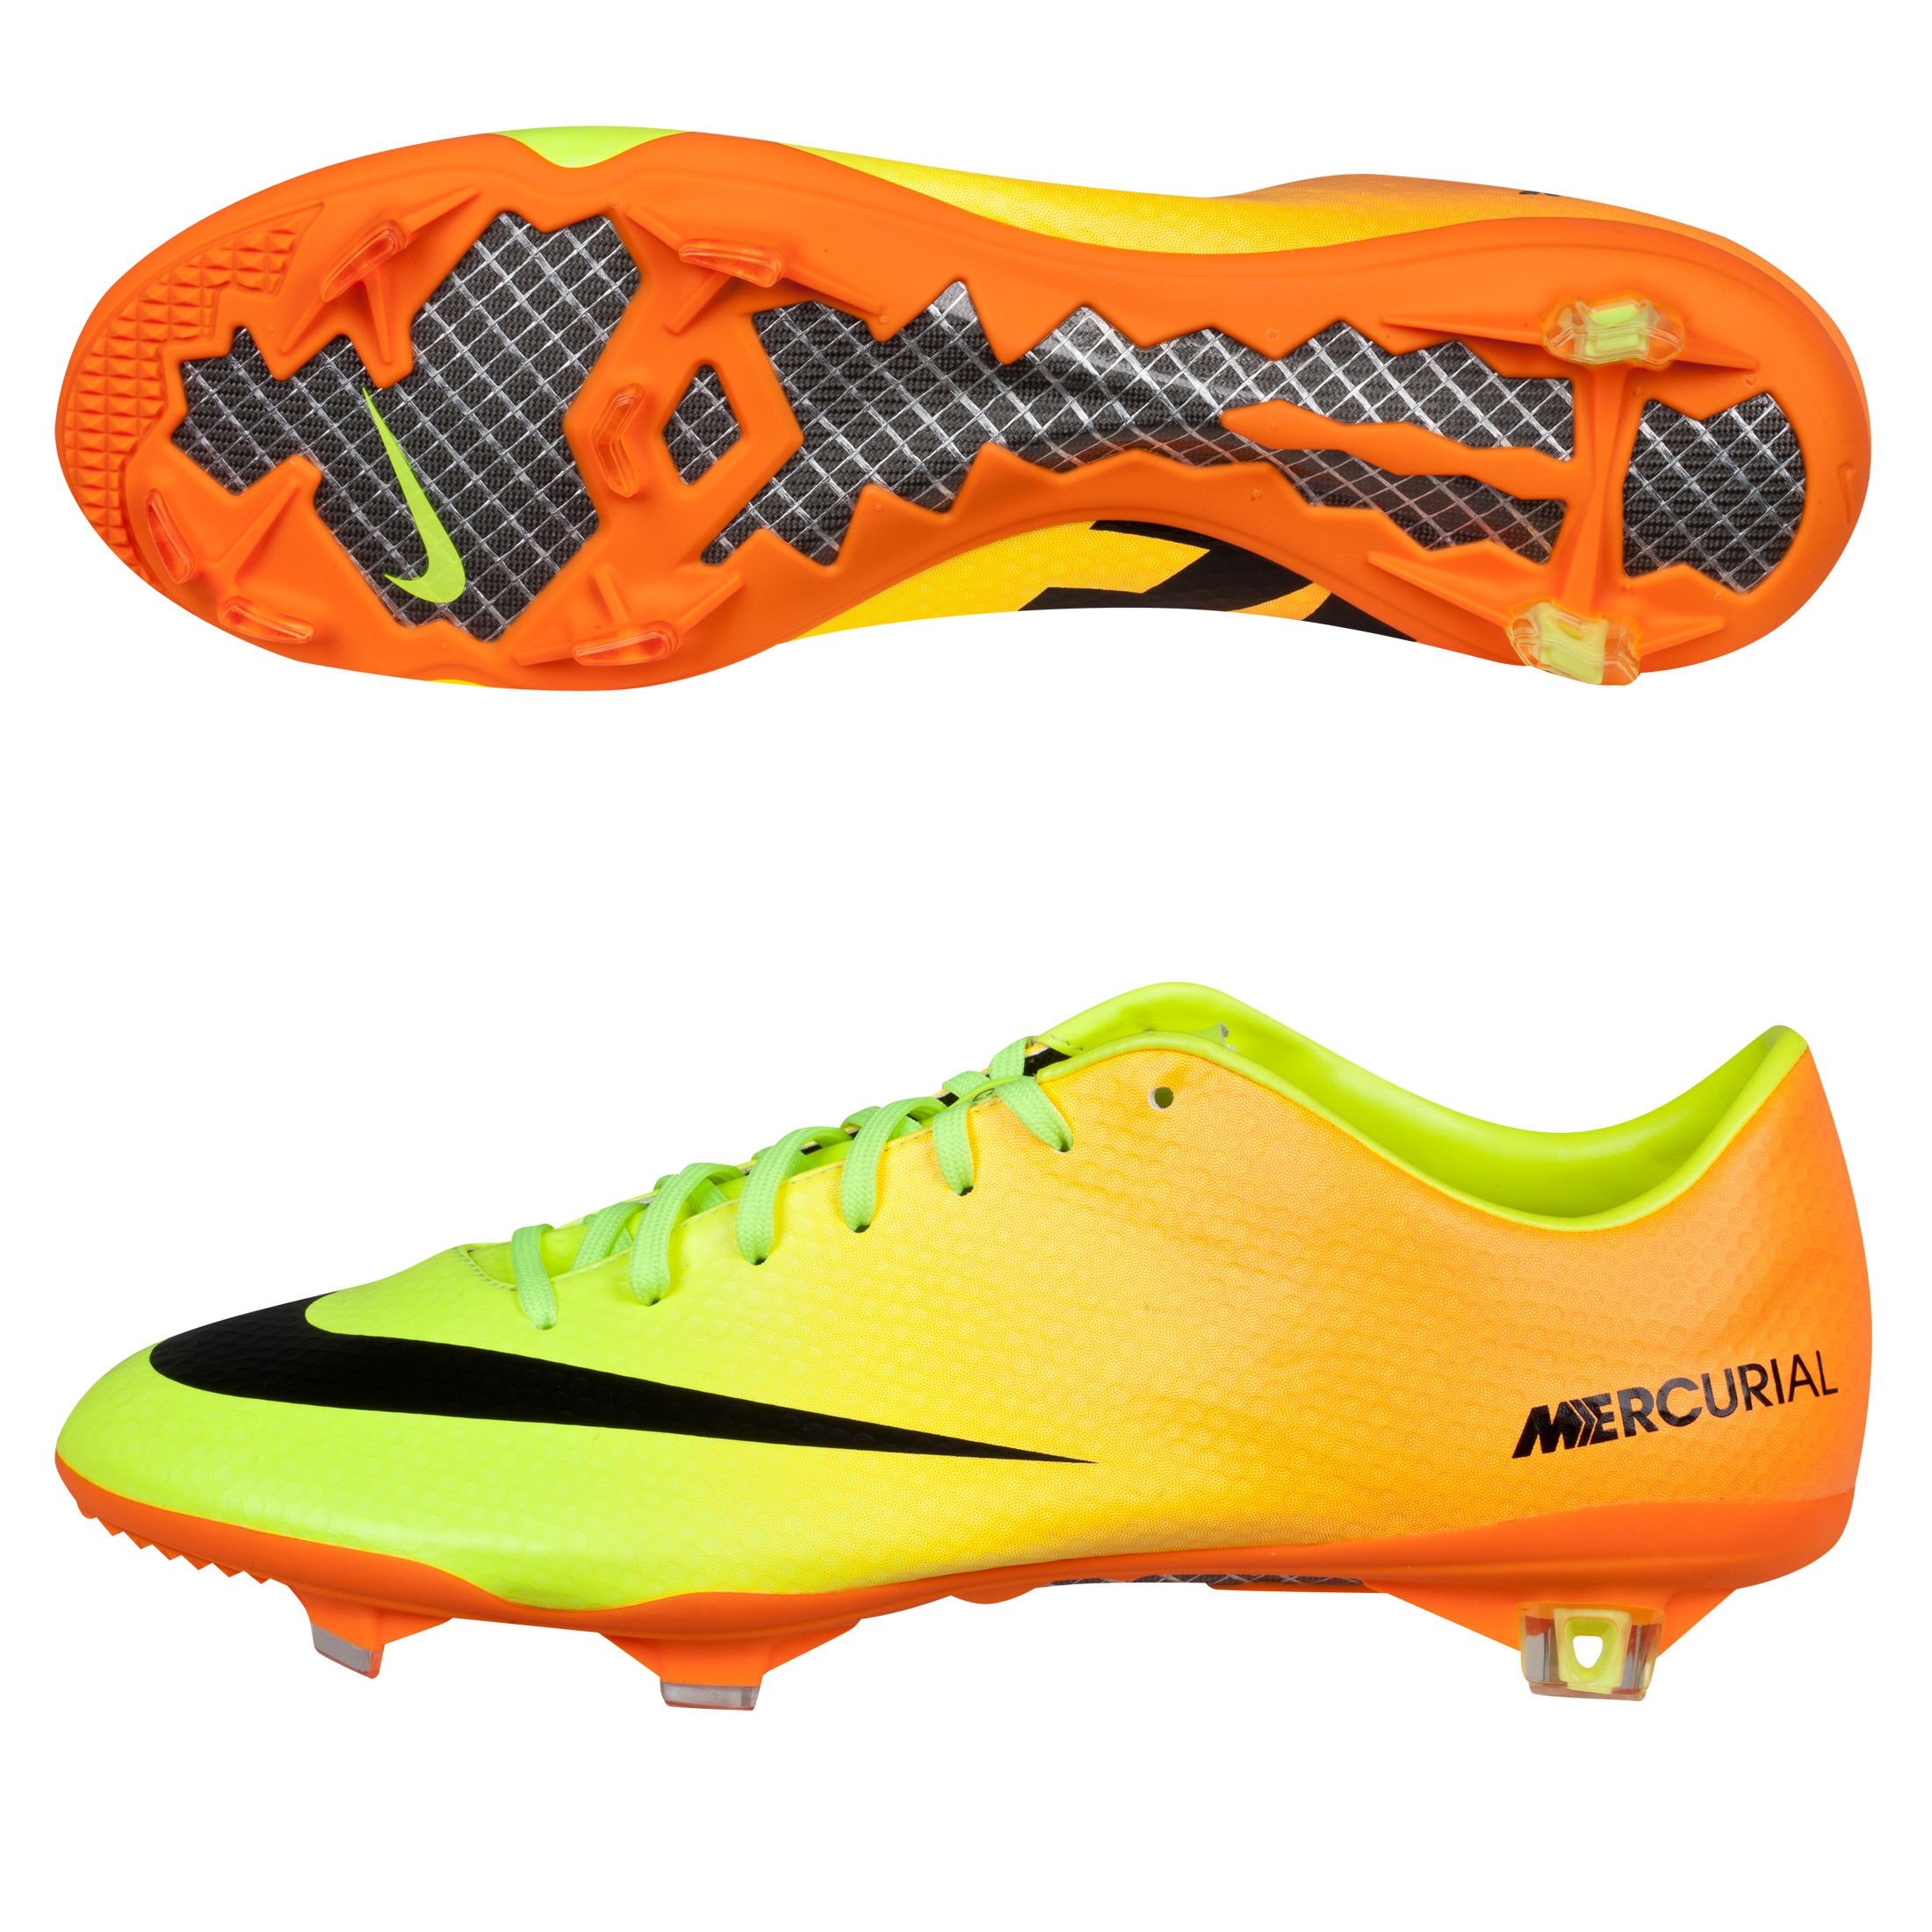 Nike Mercurial Vapor IX Firm Ground Pro Football Boots Yellow